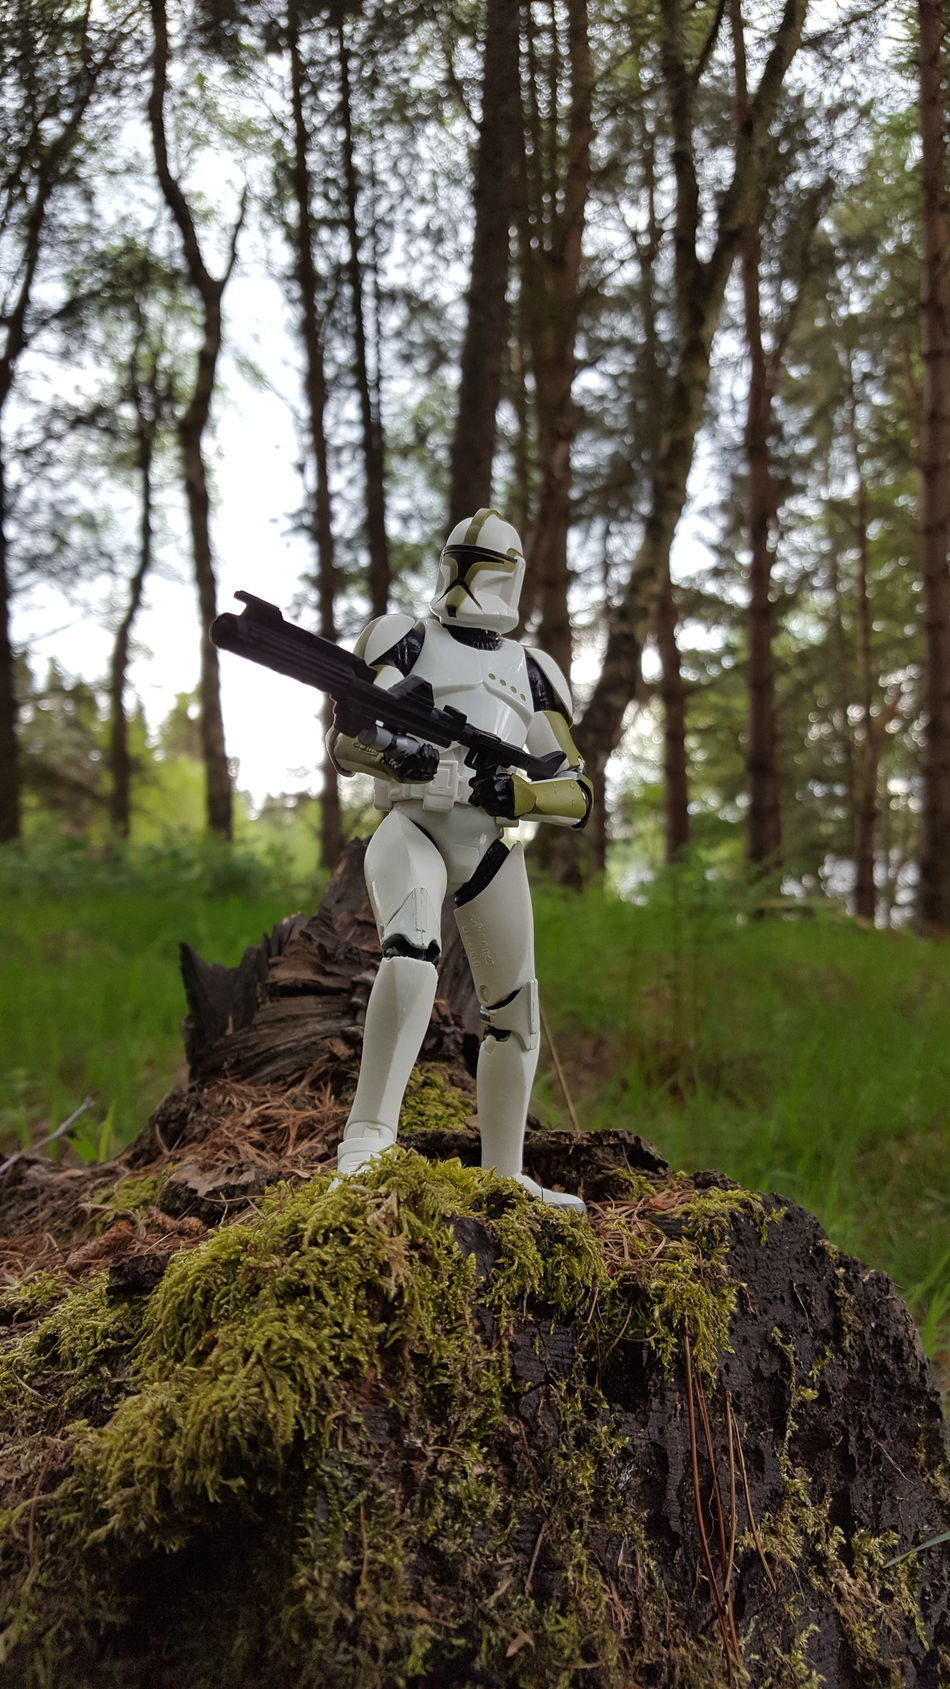 Starwars Clonetrooper Clone Trooper Sergeant Toy Photography Actionfigures Toyphotography Star Wars Starwarstheforceawakens Bb8 Starwarstheblackseries HasbroToyPic Sandtrooper Toycommunity Millenium Falcon ATTACK OF THE CLONES  R2D2 C3po Lukeskywalker KyloRen Captainphasma Starwarstoyfigs